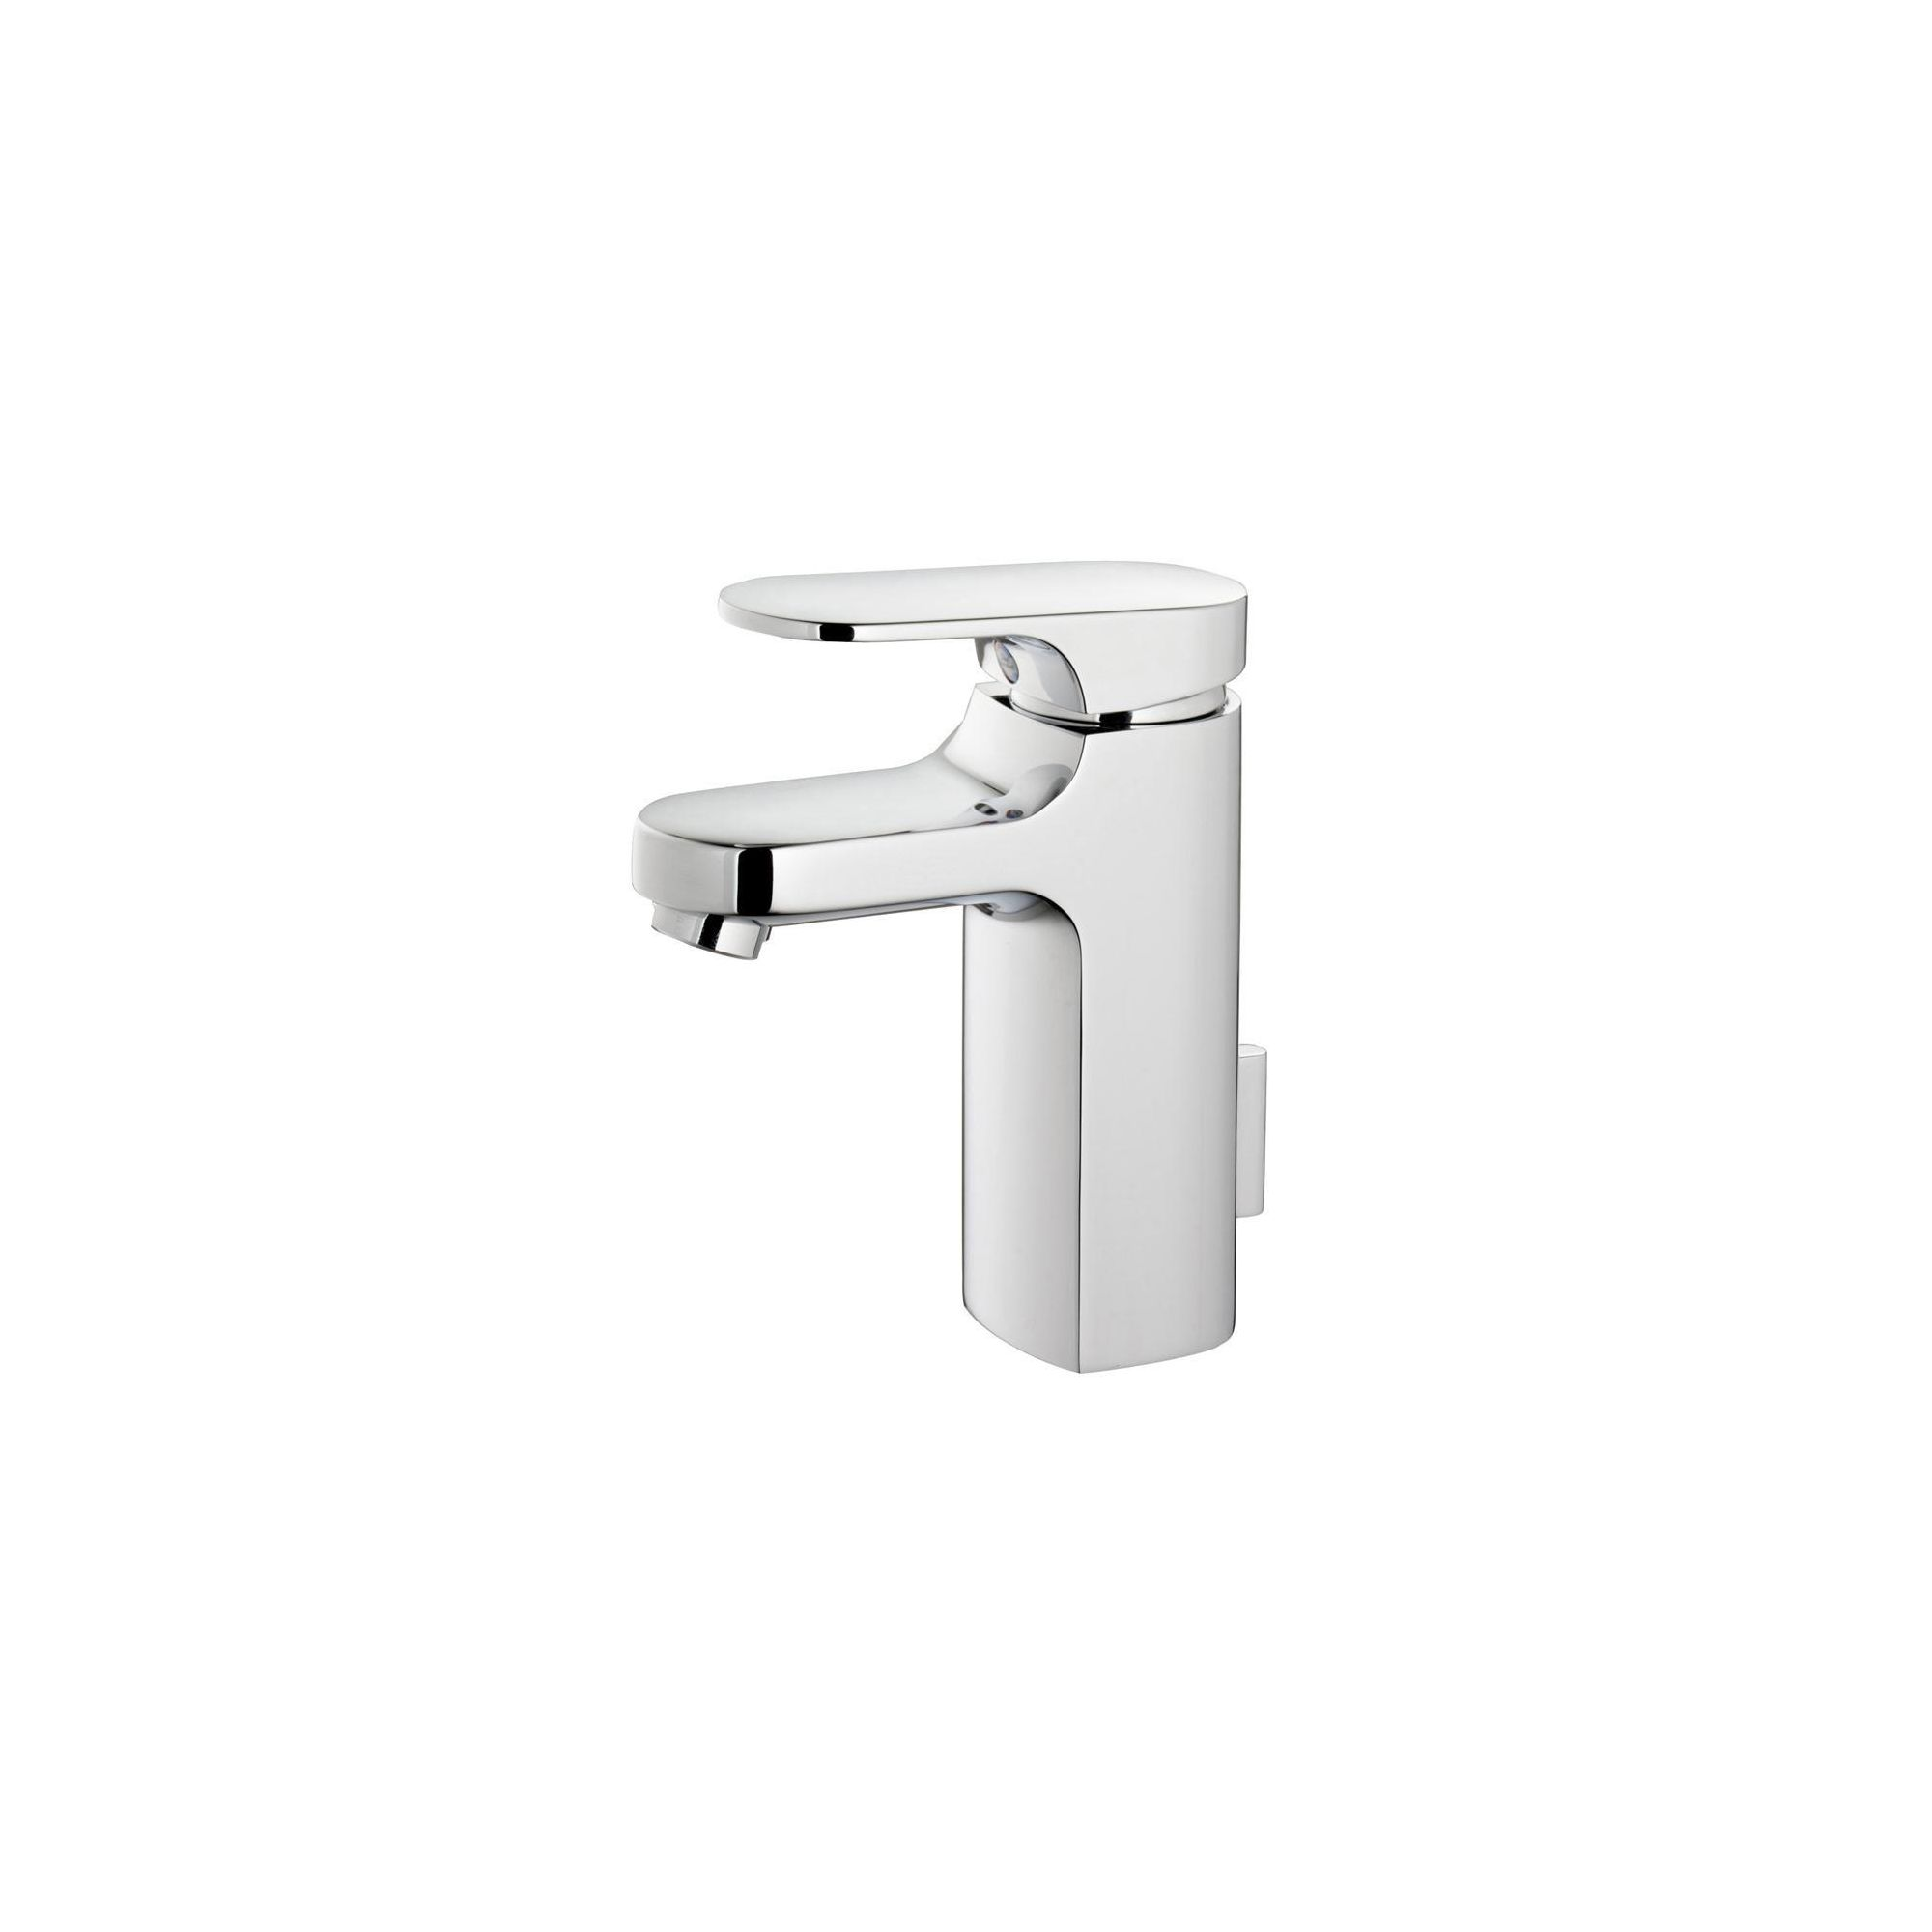 Ideal Standard Moments Handrinse Mono Basin Mixer Tap Chrome including Pop-Up Waste at Tescos Direct